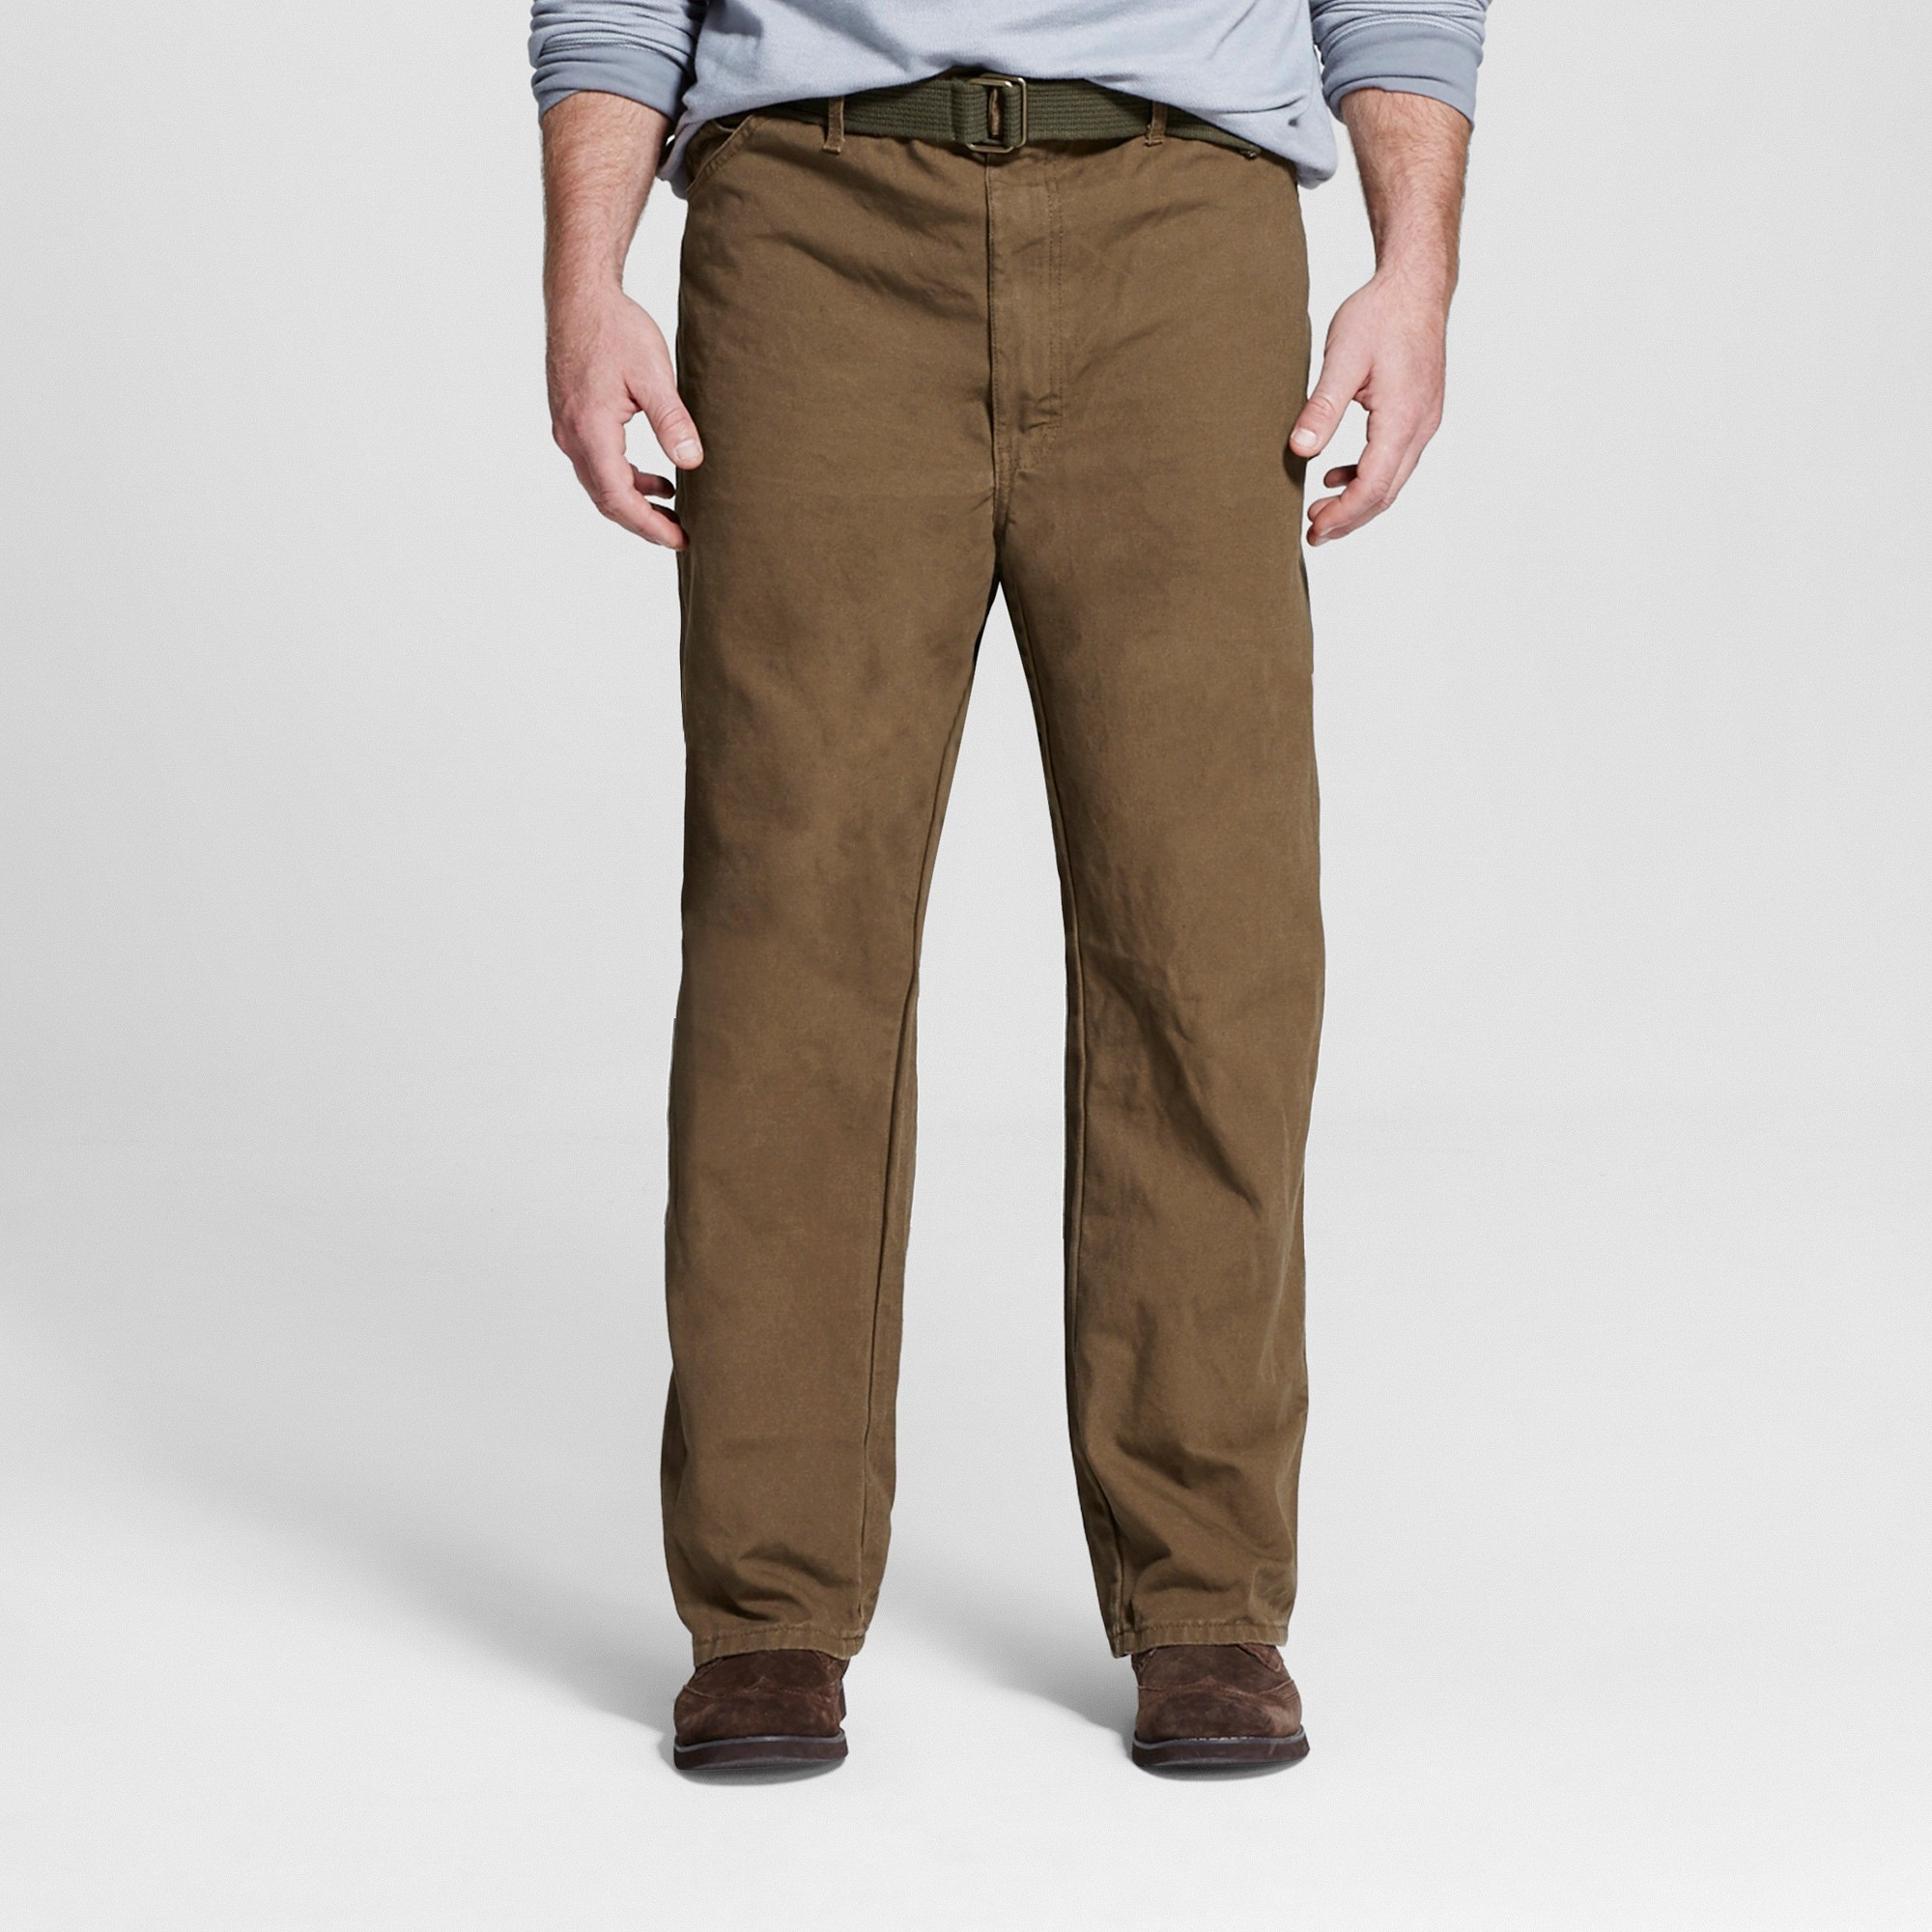 bee1bf10 Dickies Men's Big & Tall Relaxed Straight Fit Canvas Duck Carpenter Jean-  Timber 44x34